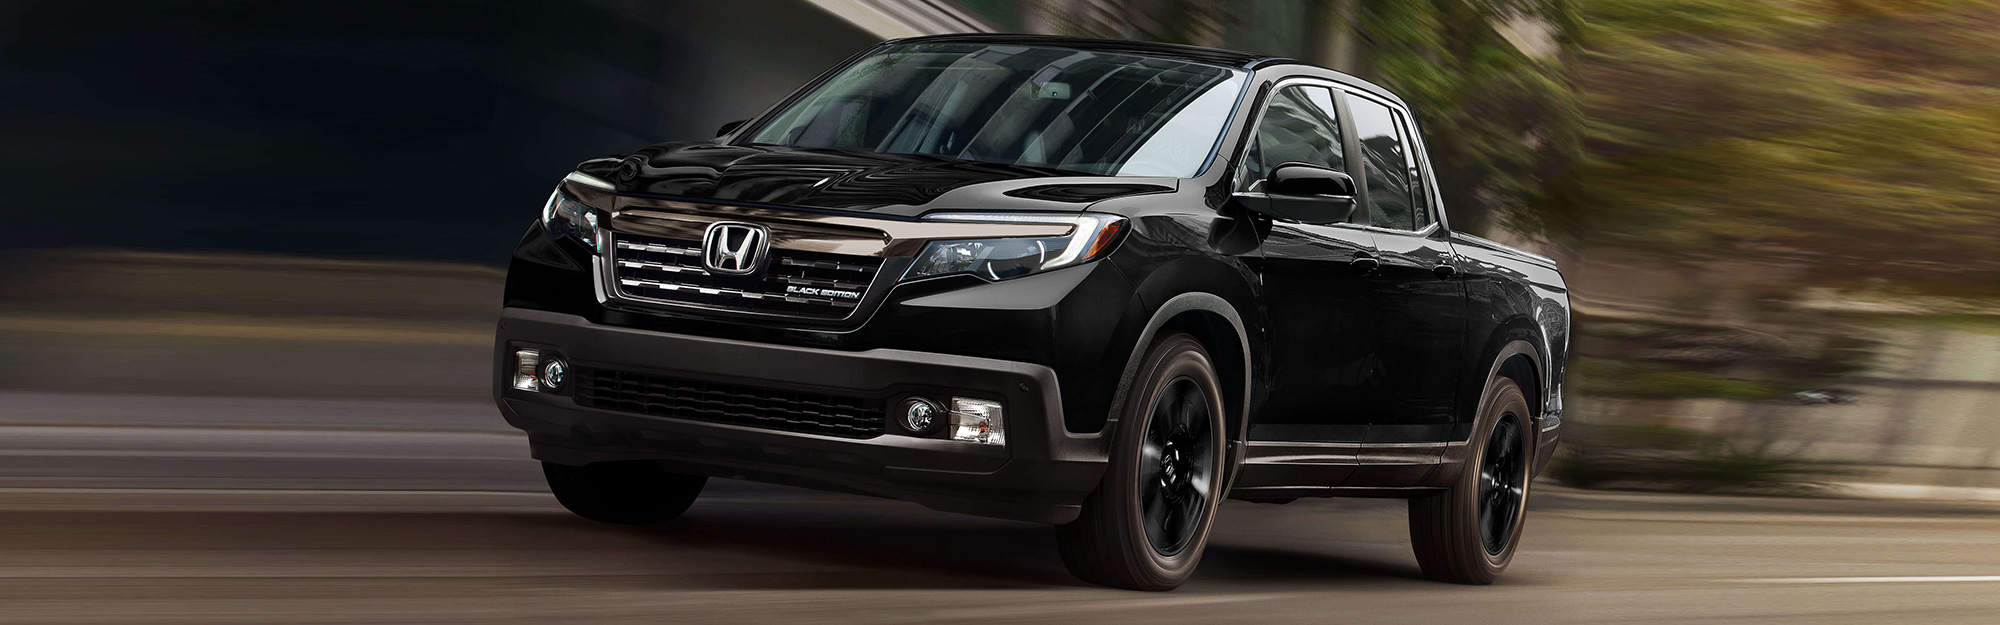 2019 honda ridgeline in black